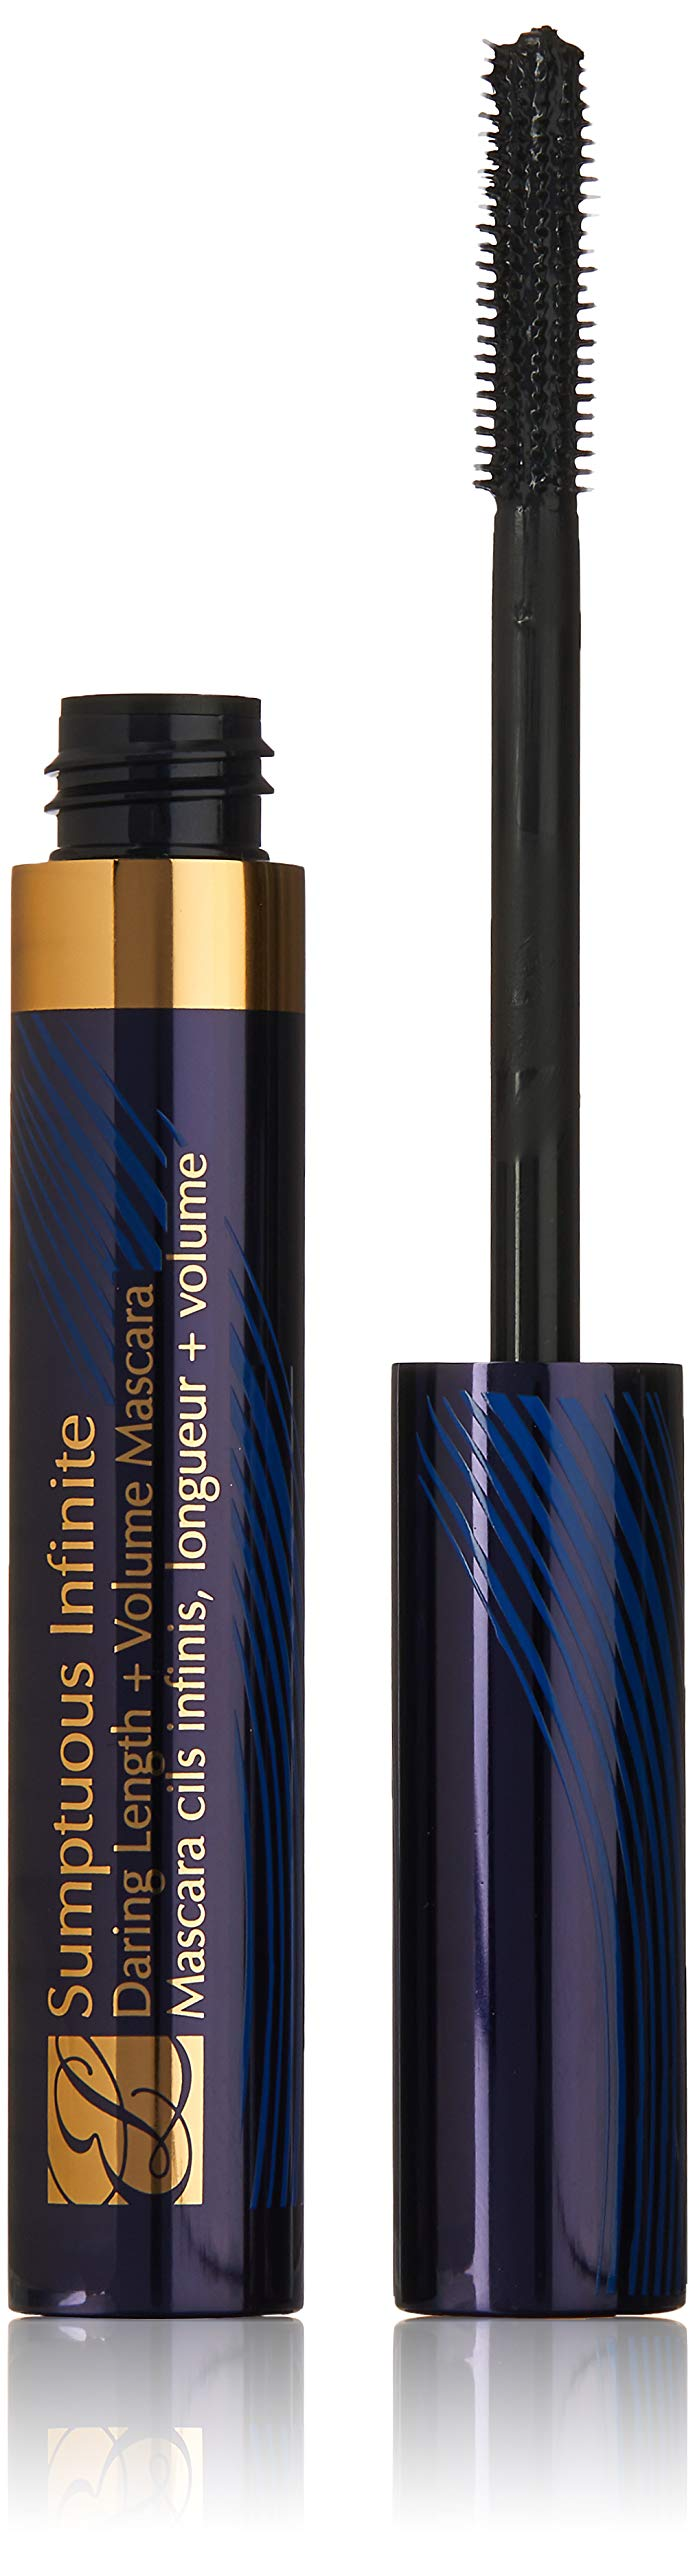 Estee Lauder Sumptuous Infinite Daring Length plus Volume Mascara, 0.21 Ounce